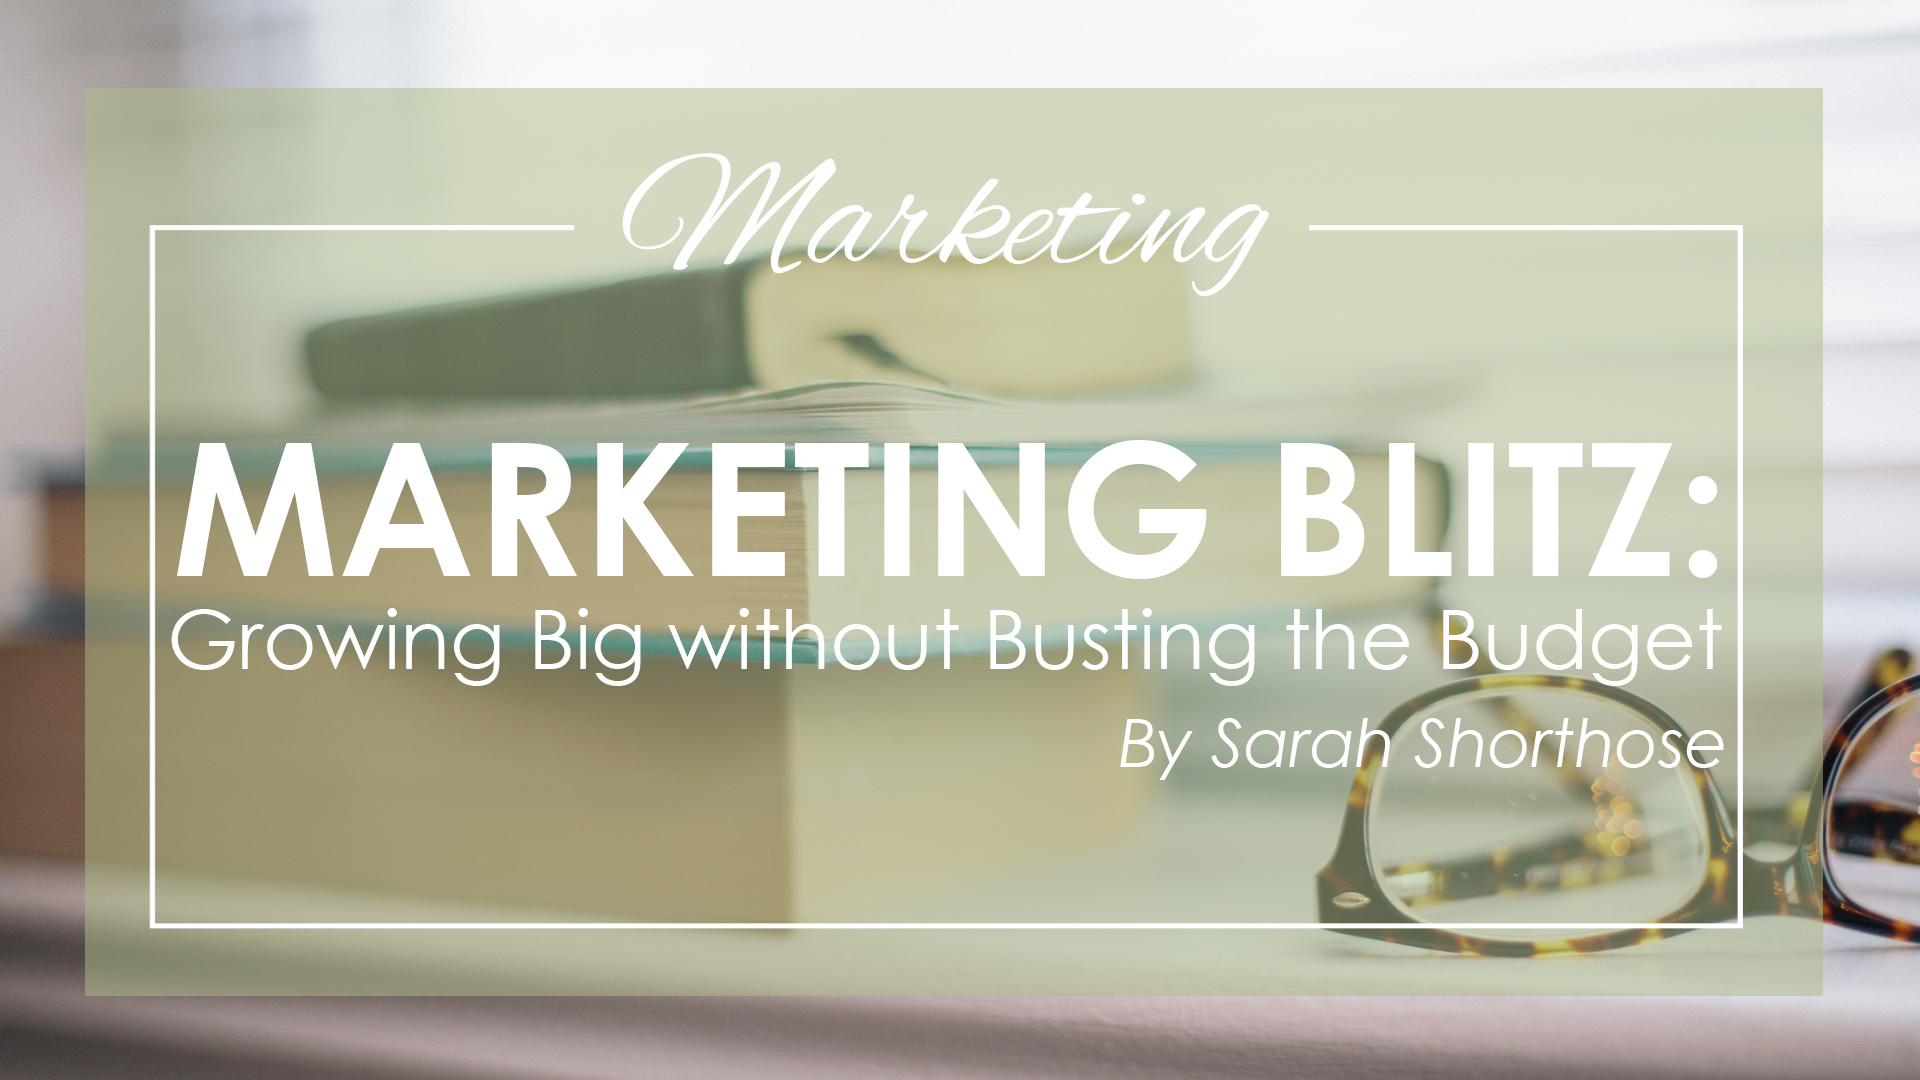 Marketing Blitz: Growing Big Without Busting the Budget